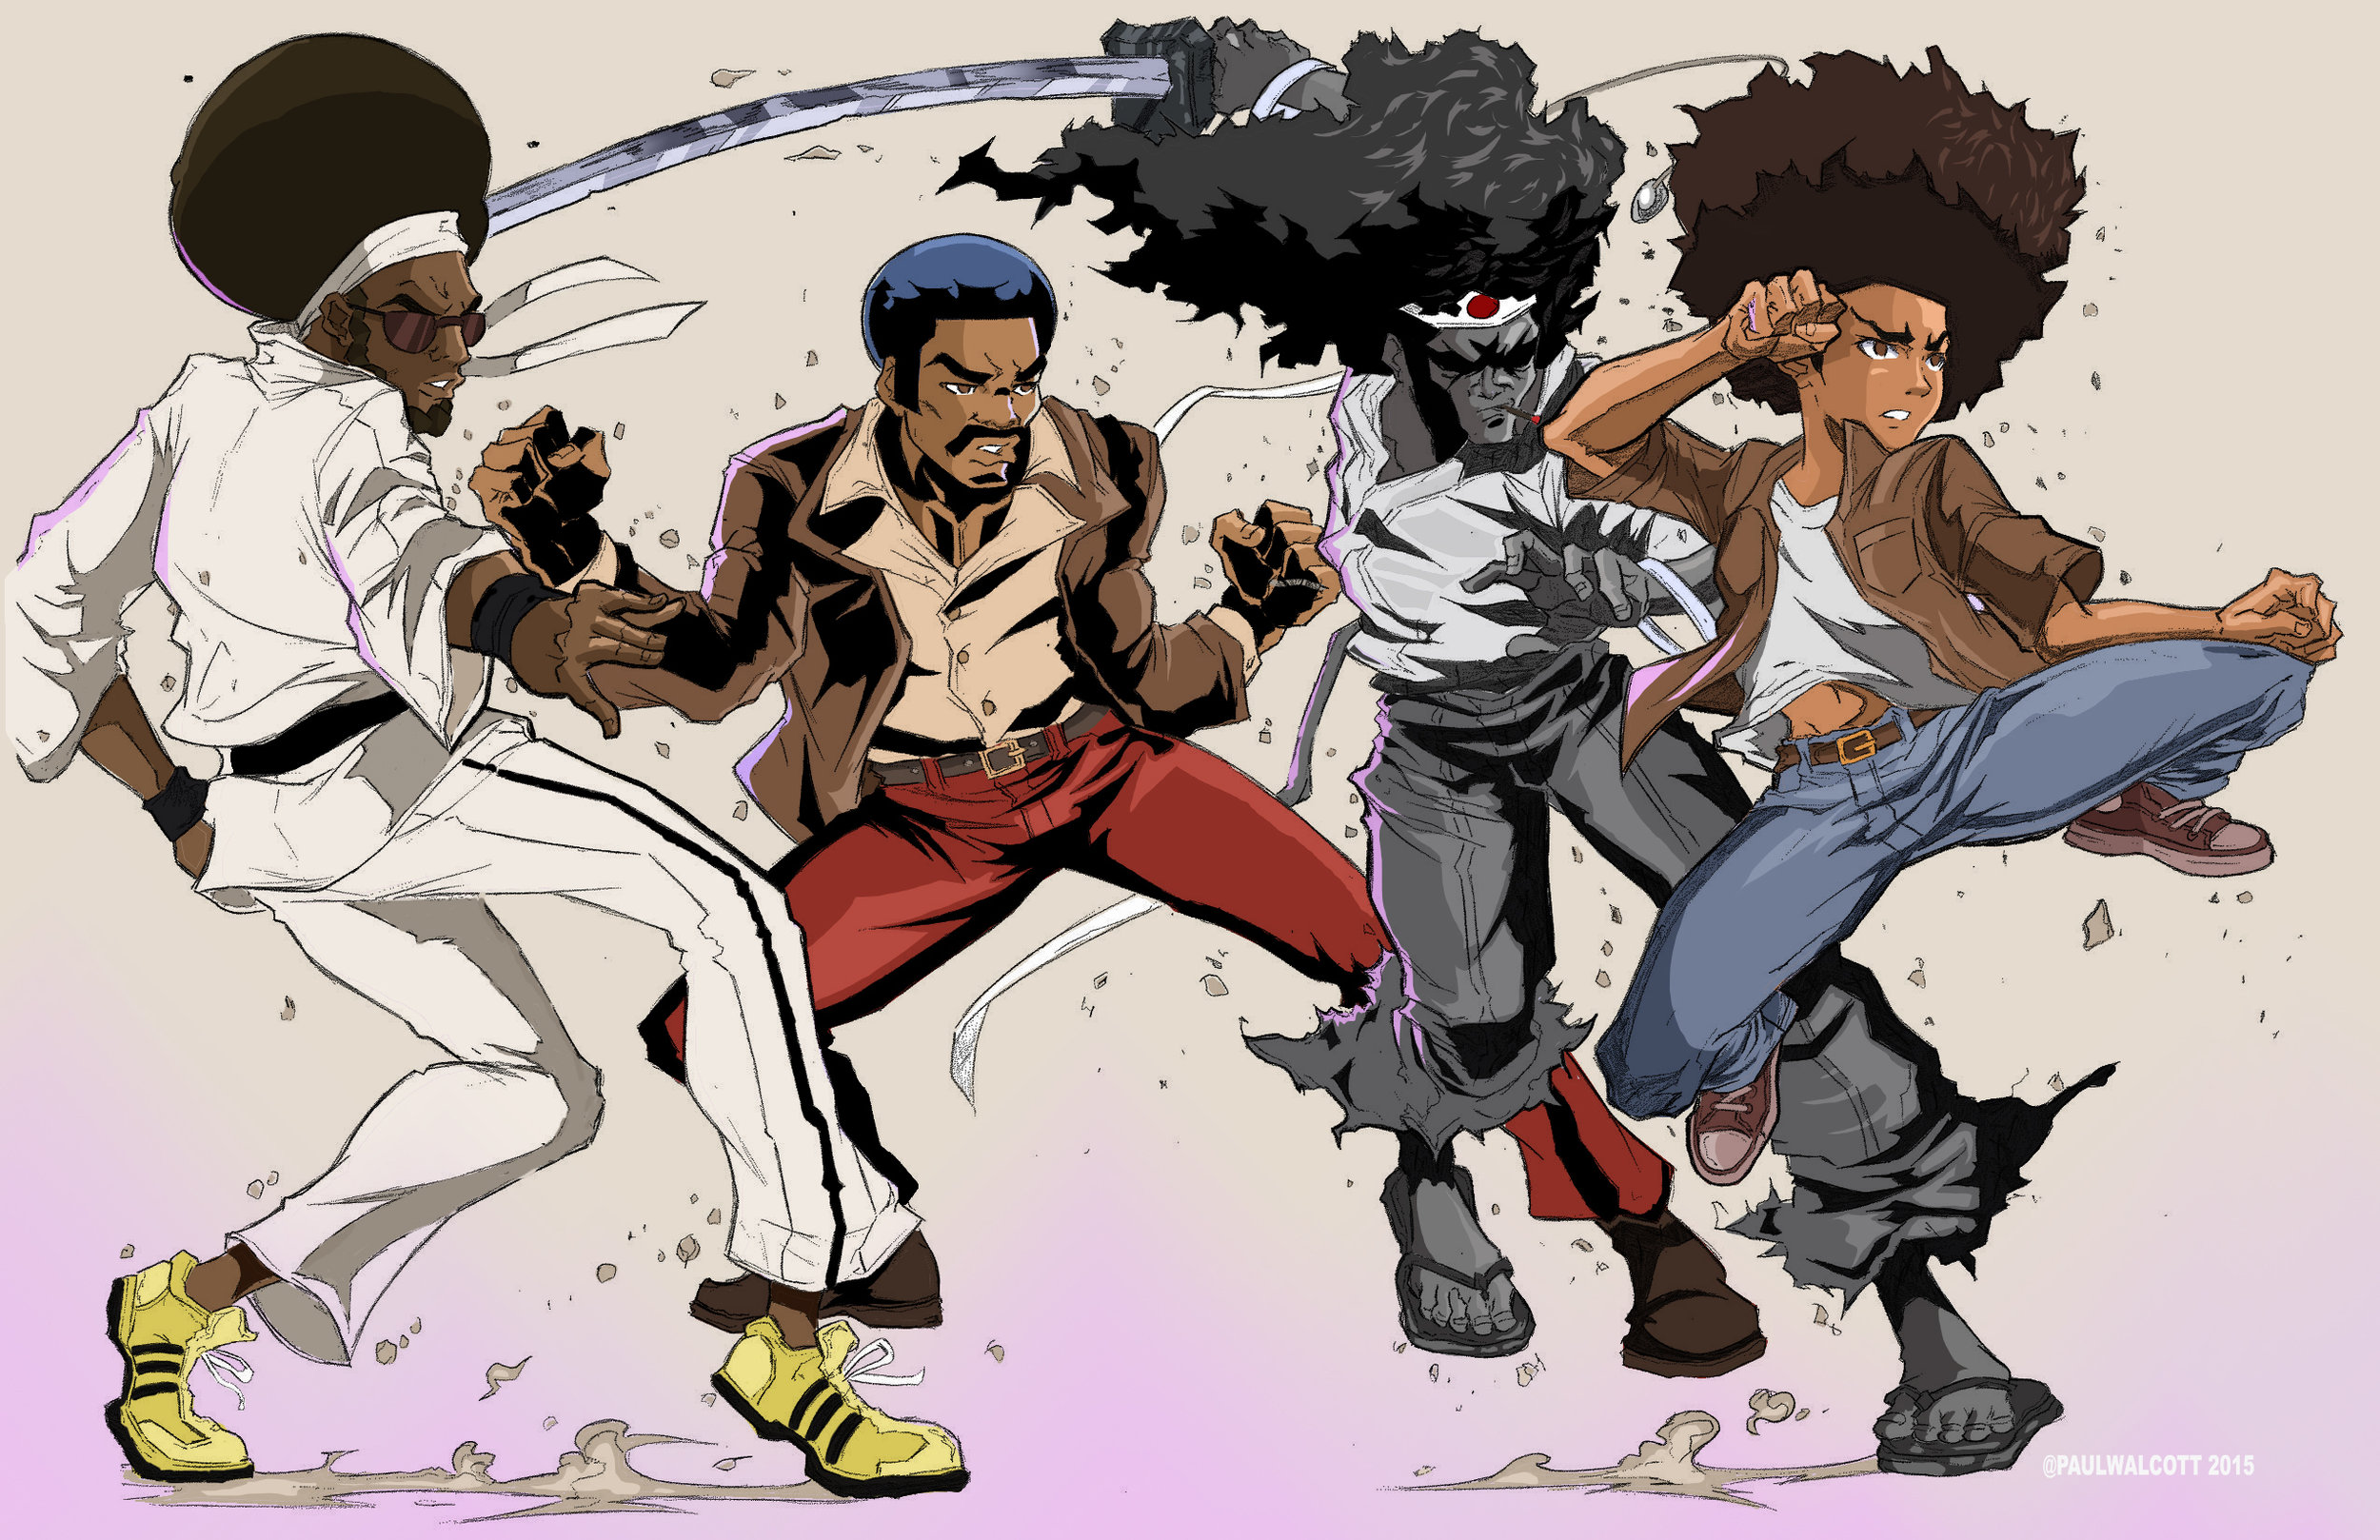 Four Brothers: (left to right) Bushido Brown, Black Dynamite, Afro Samurai, and Huey Freeman